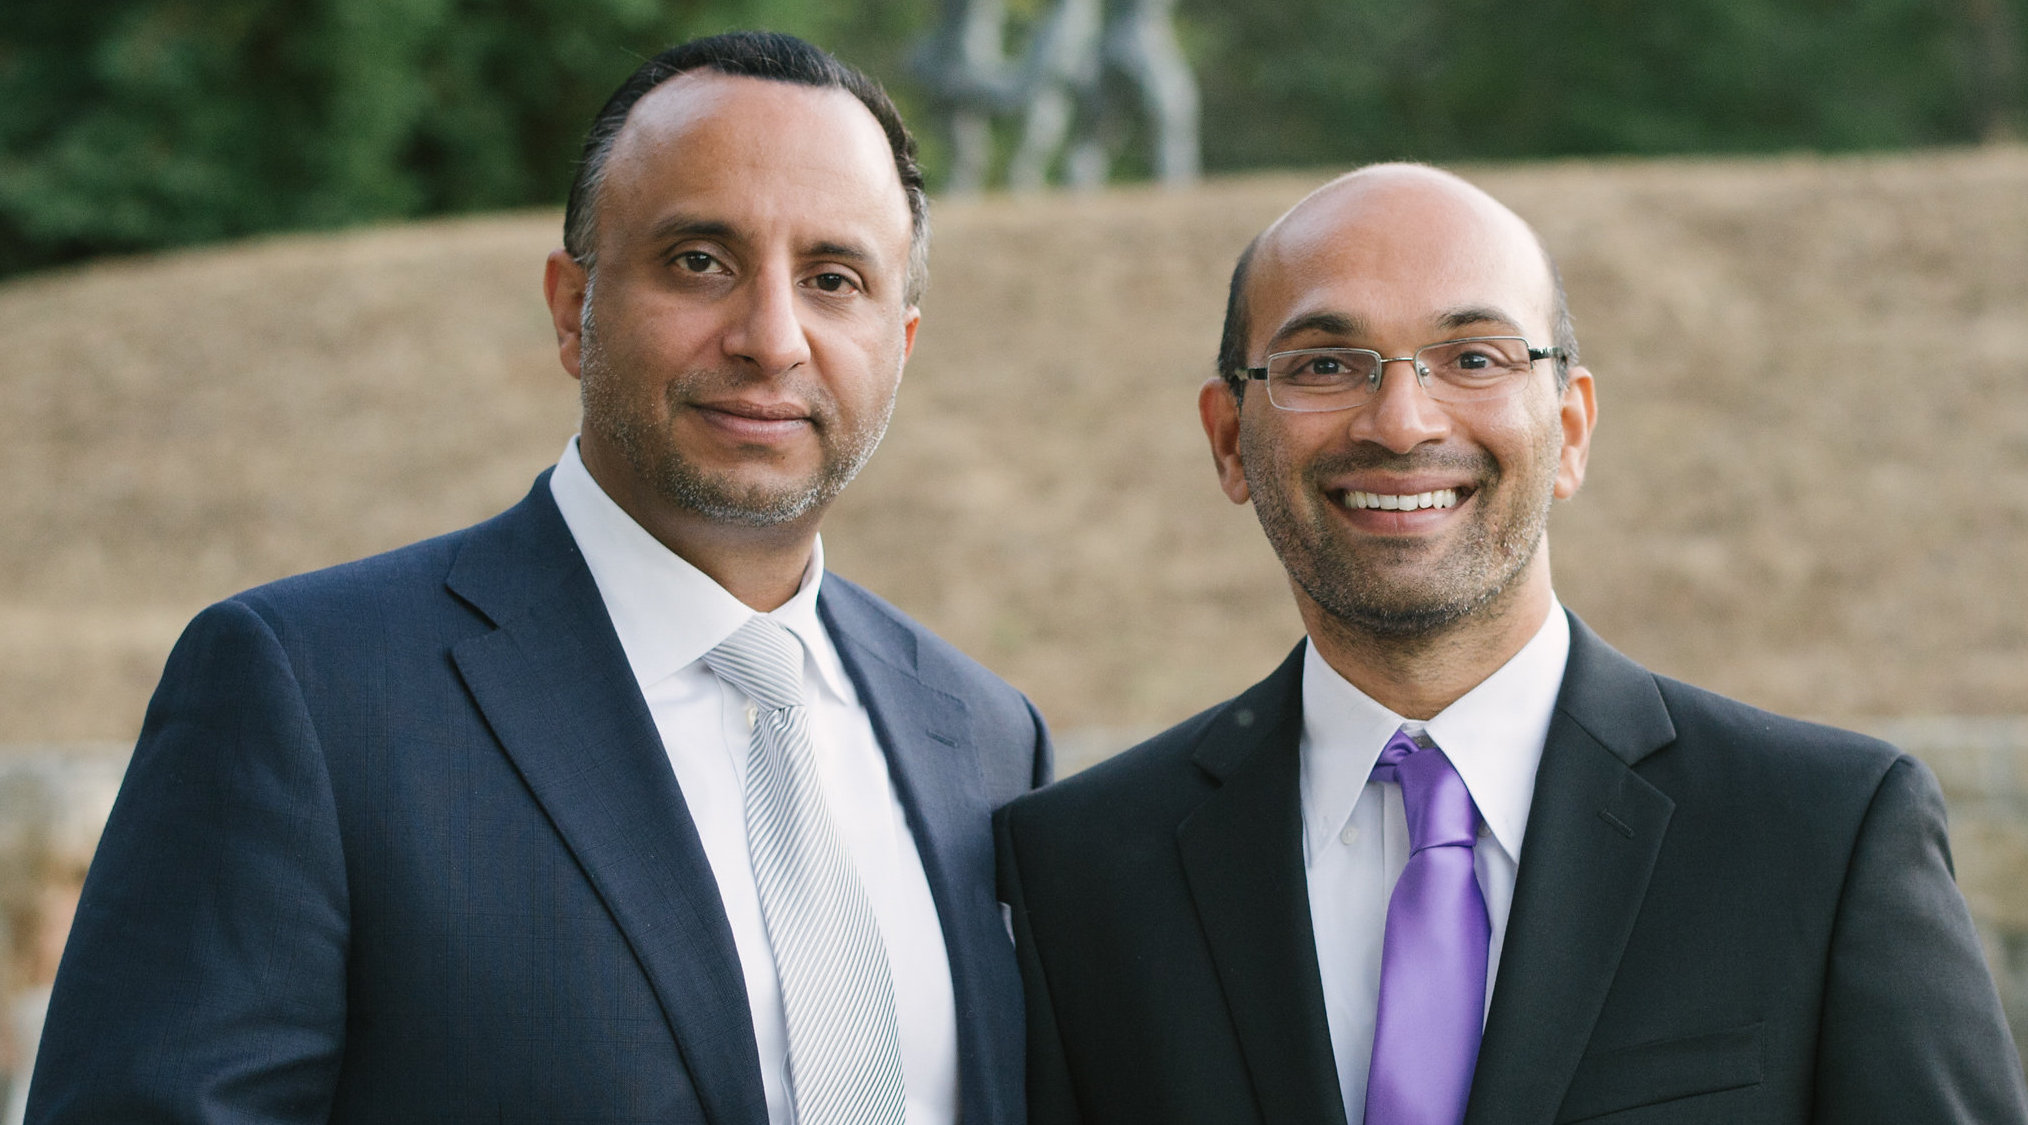 Putting the Security in CyberSecurity: Prakash Linga and Ajay Arora, Co-Founders, BluBracket